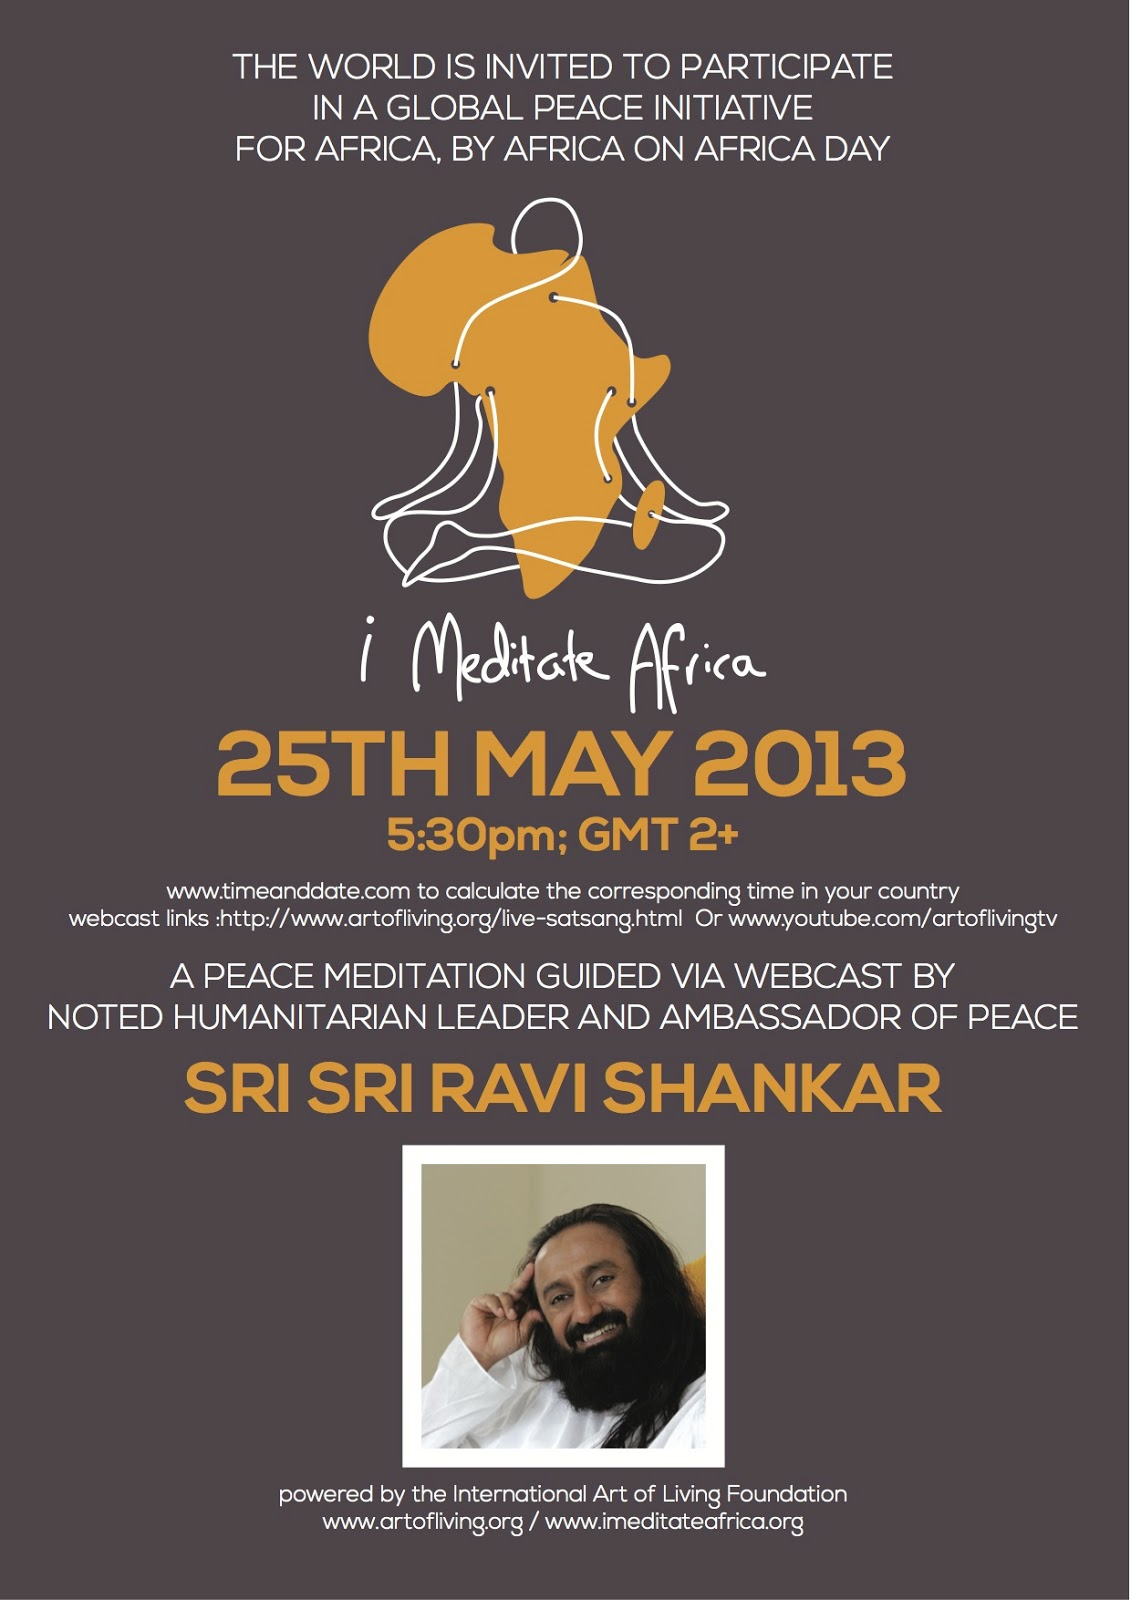 i meditate africa following sri sri